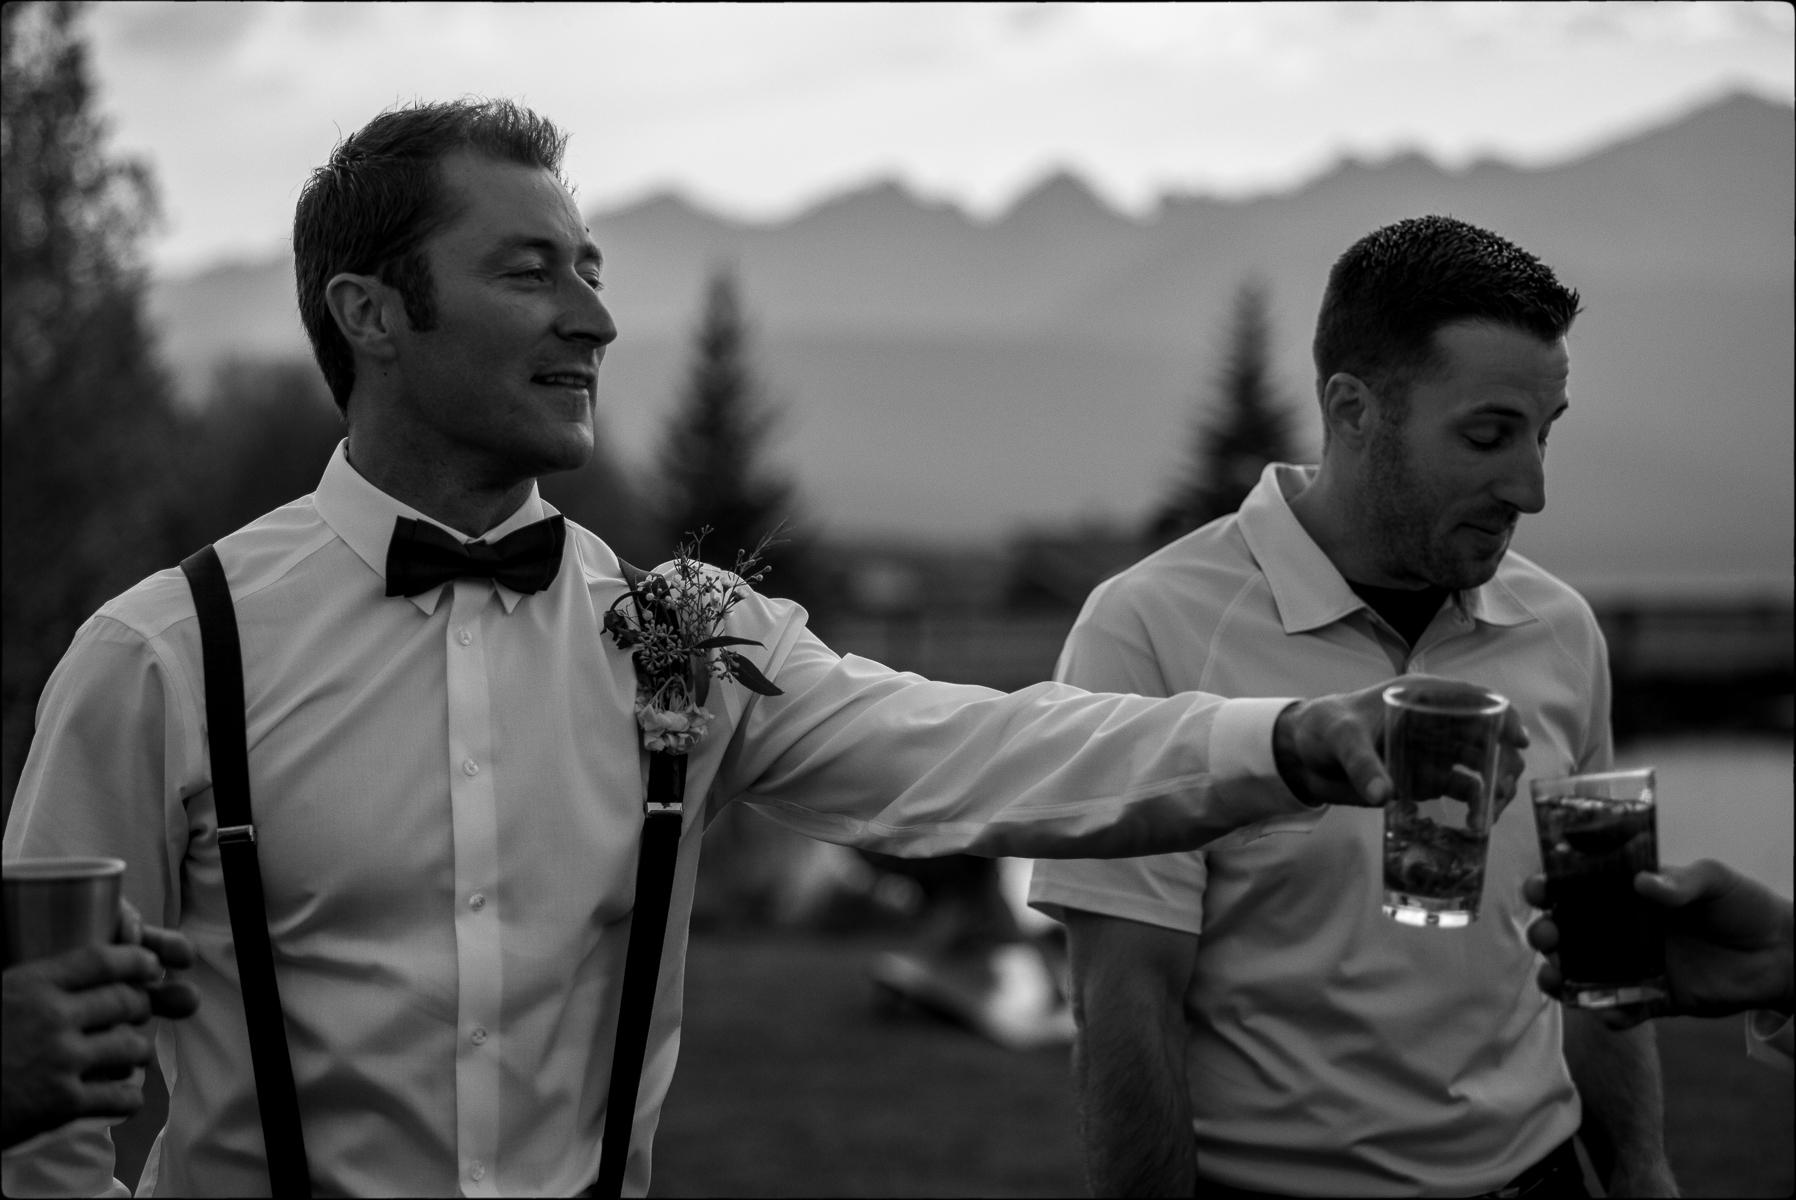 Best Man, Stanley, Idaho : street & stories : TIMOTHY FLOYD PHOTOGRAPHER, NATURE PHOTOGRAPHY, PHOTO ESSAYS, PHOTOJOURNALISM